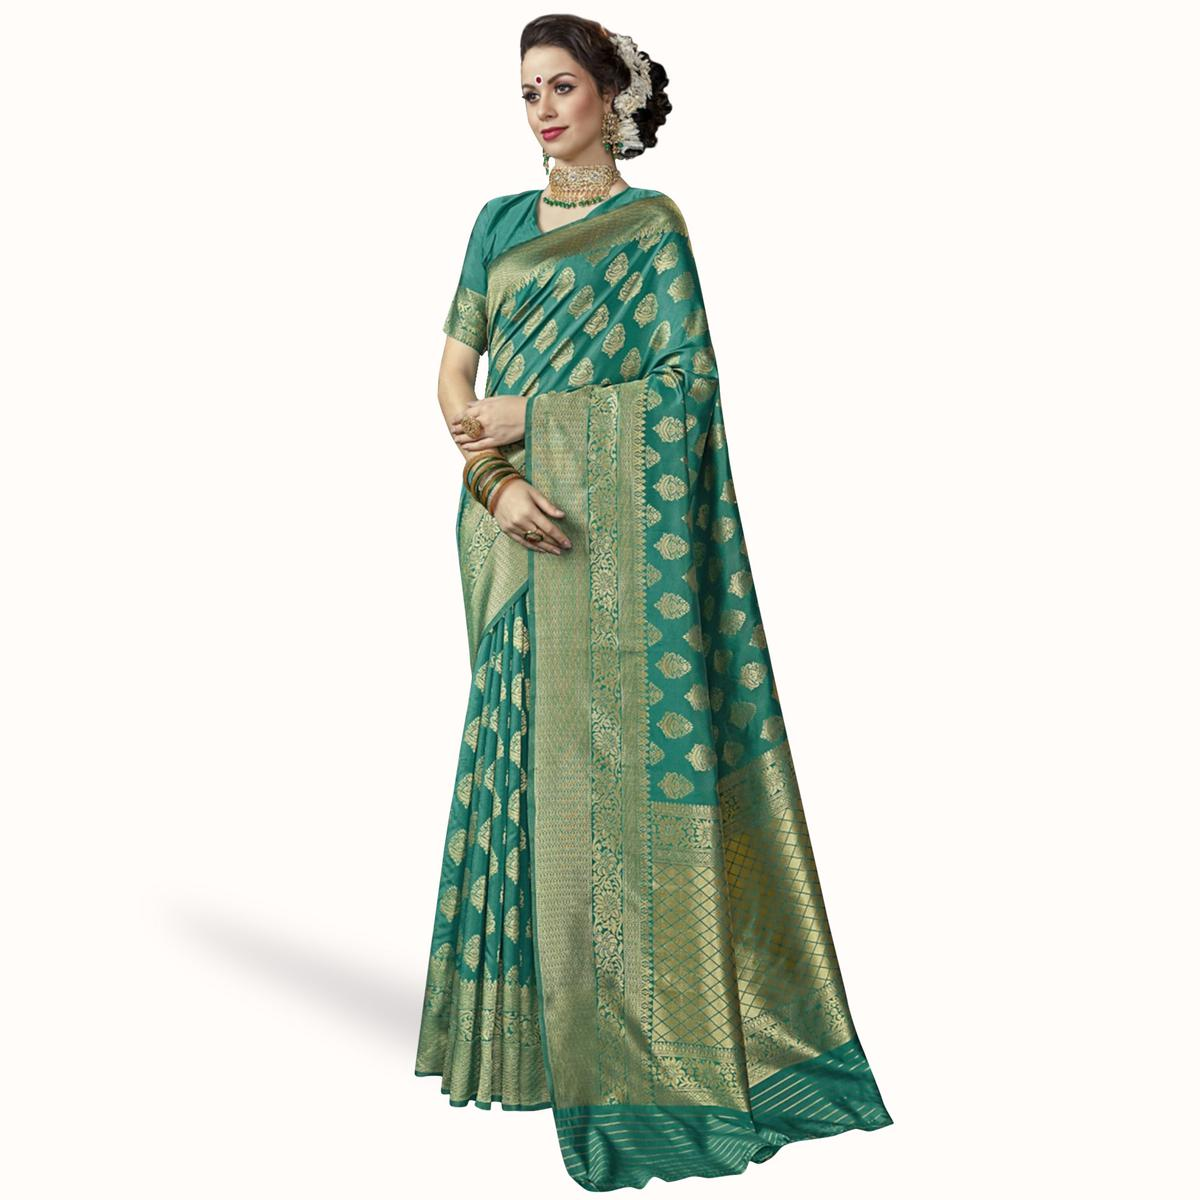 Blooming Turquoise Green Colored Festive Wear Woven Crepe Saree